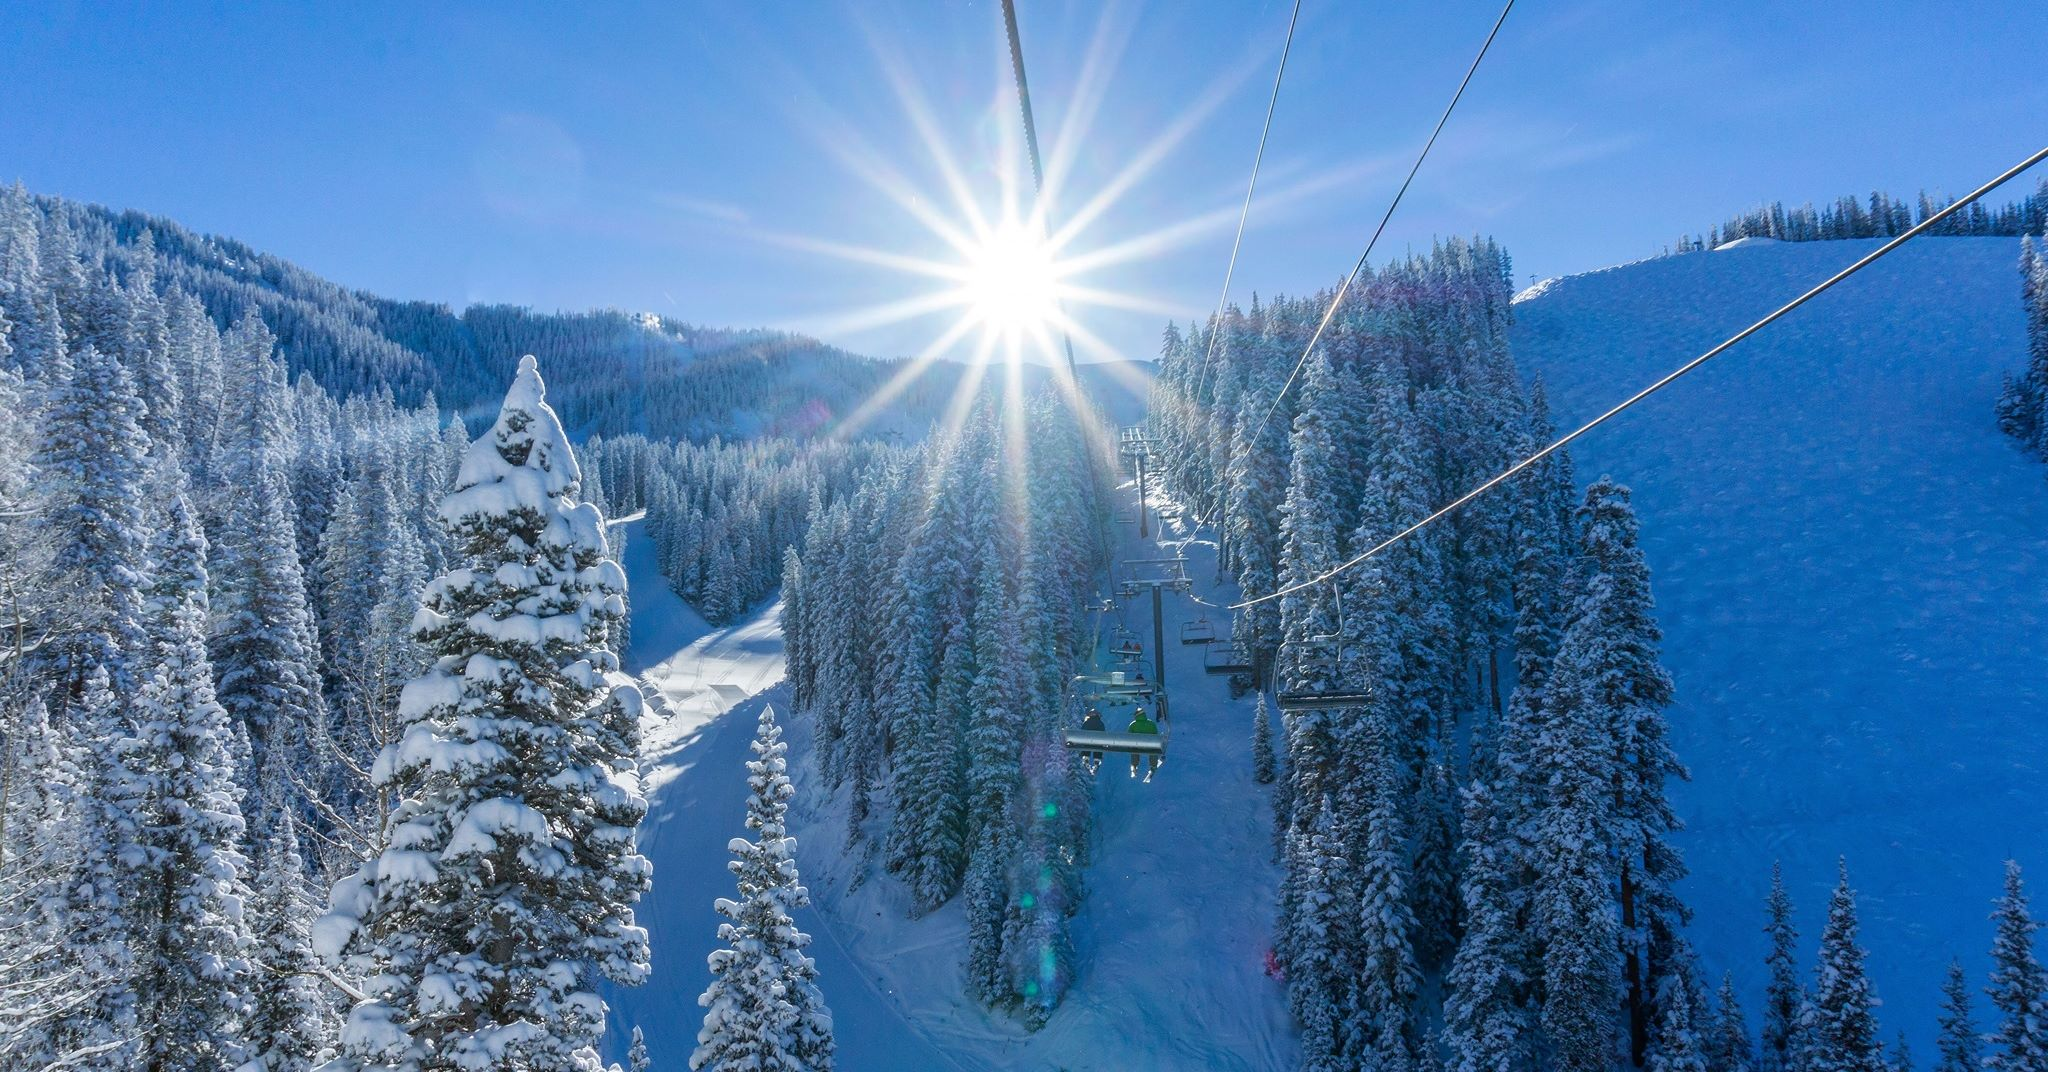 Accommodations In Telluride Colorado Ullr Ski Lift and Slope